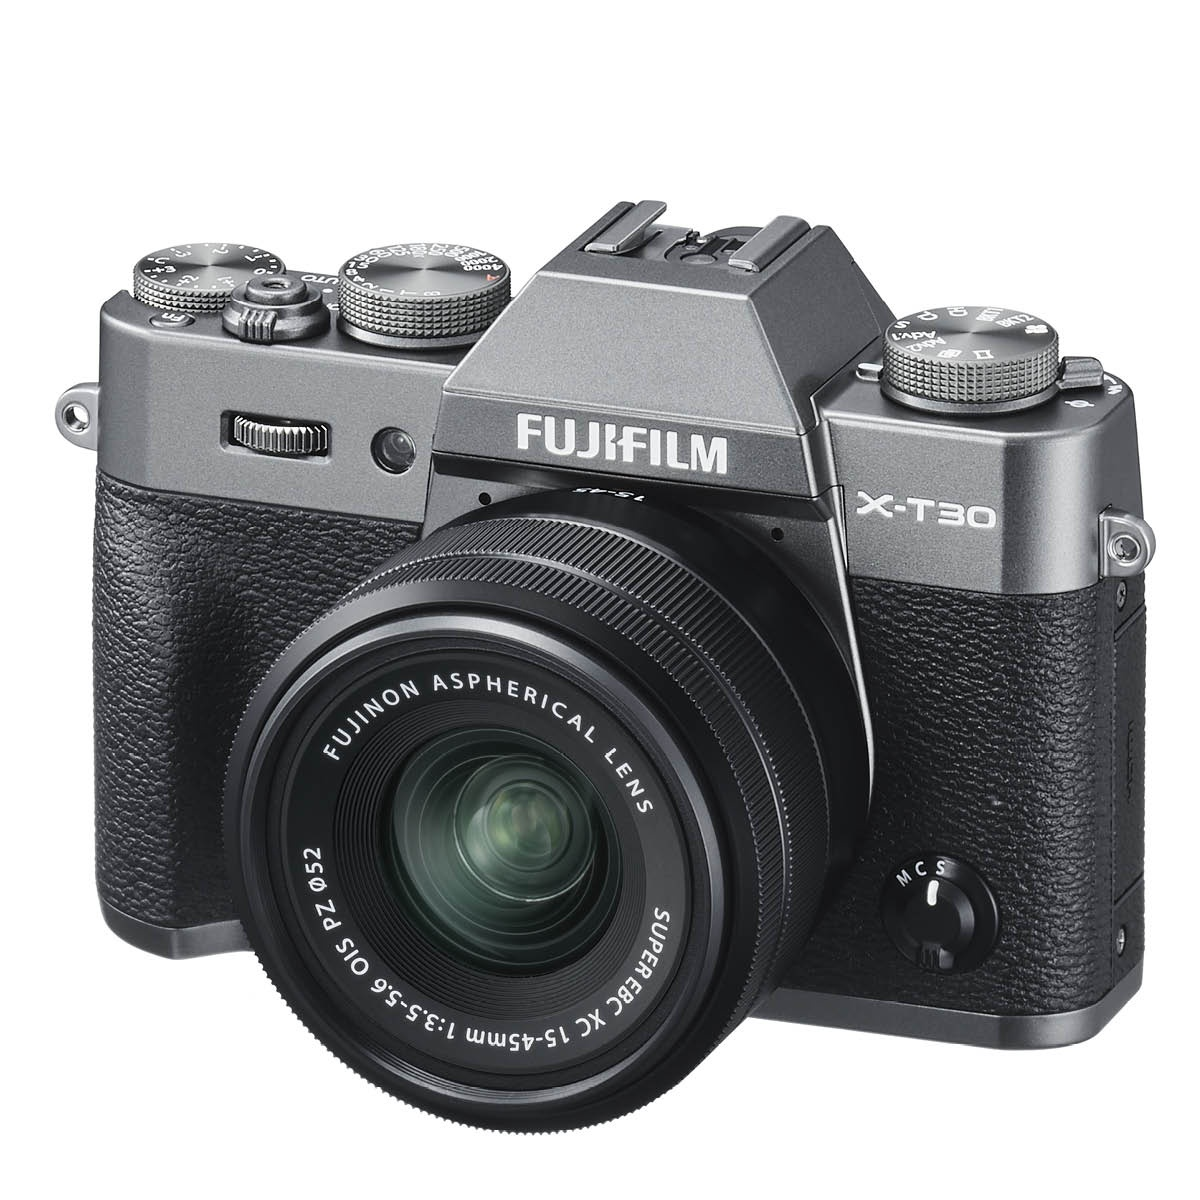 Fujifilm X T30 Kit mit 18-55 mm Anthrazit